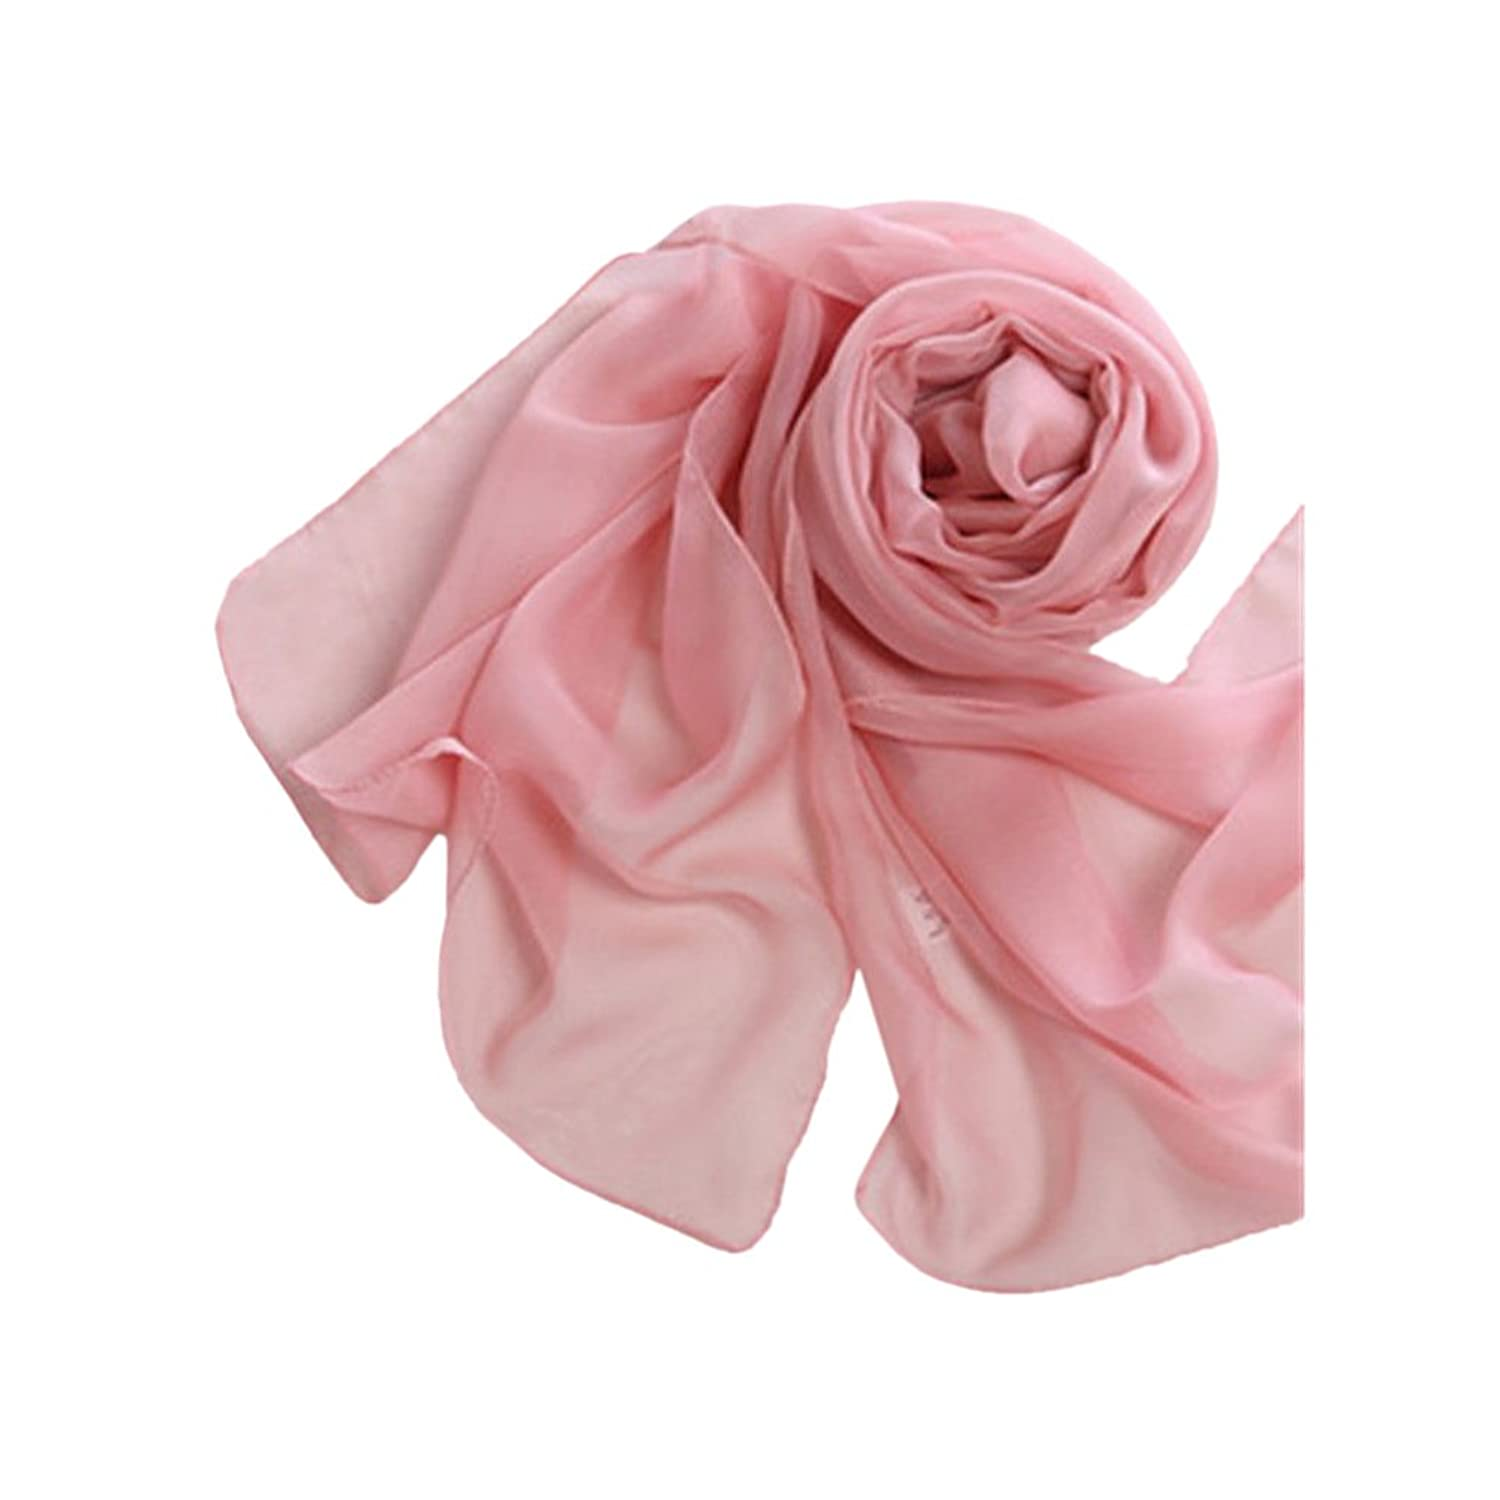 Rubber Pink Fashion Lady Girls Long Soft Chiffon Scarf Wrap Shawl Stole Scarves